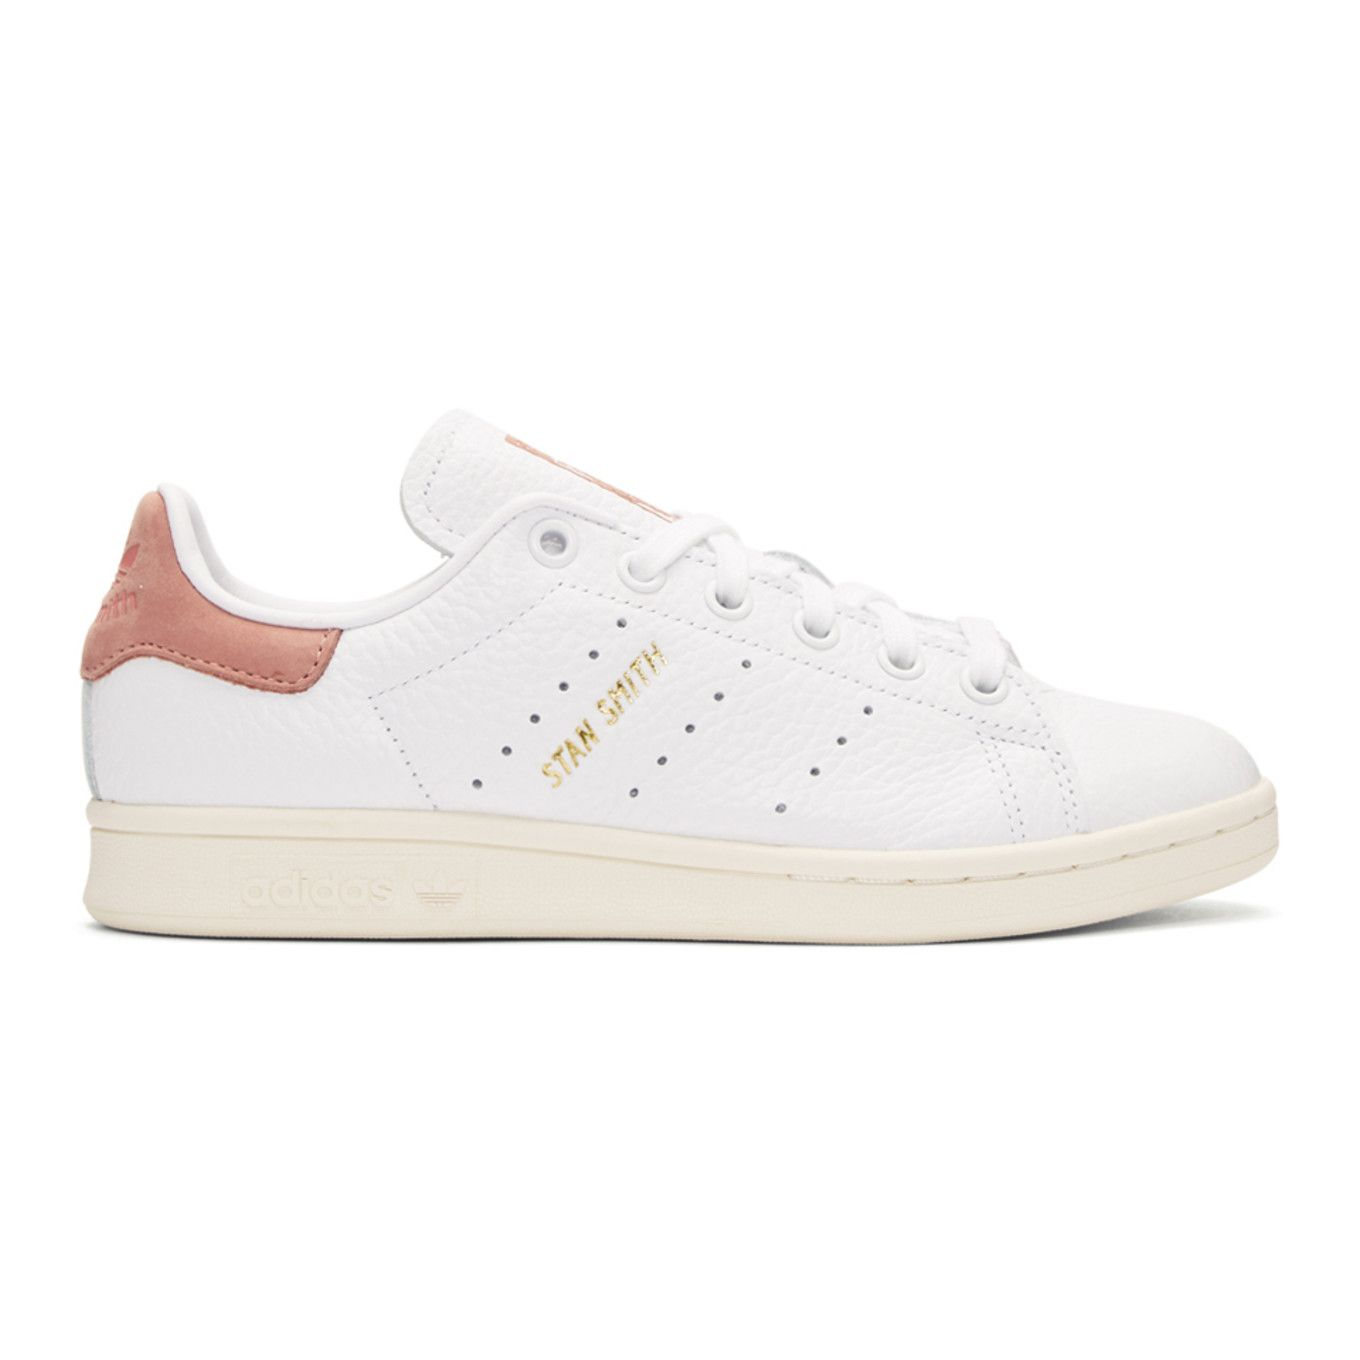 adidas Originals x Pharrell Williams White & Pink Stan